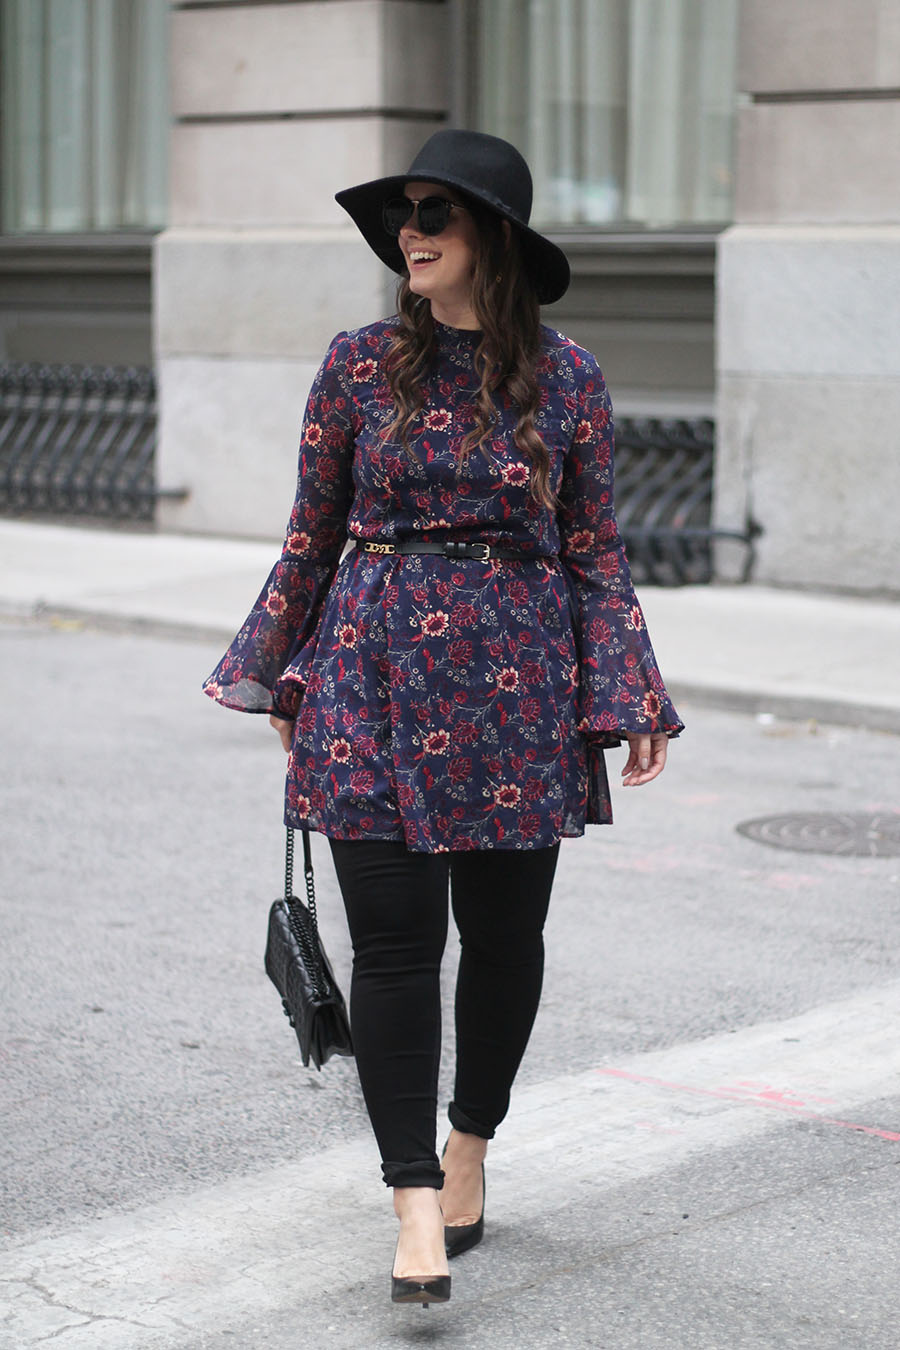 street-style-fashion-bloggers-toronto-canada-a-side-of-vogue